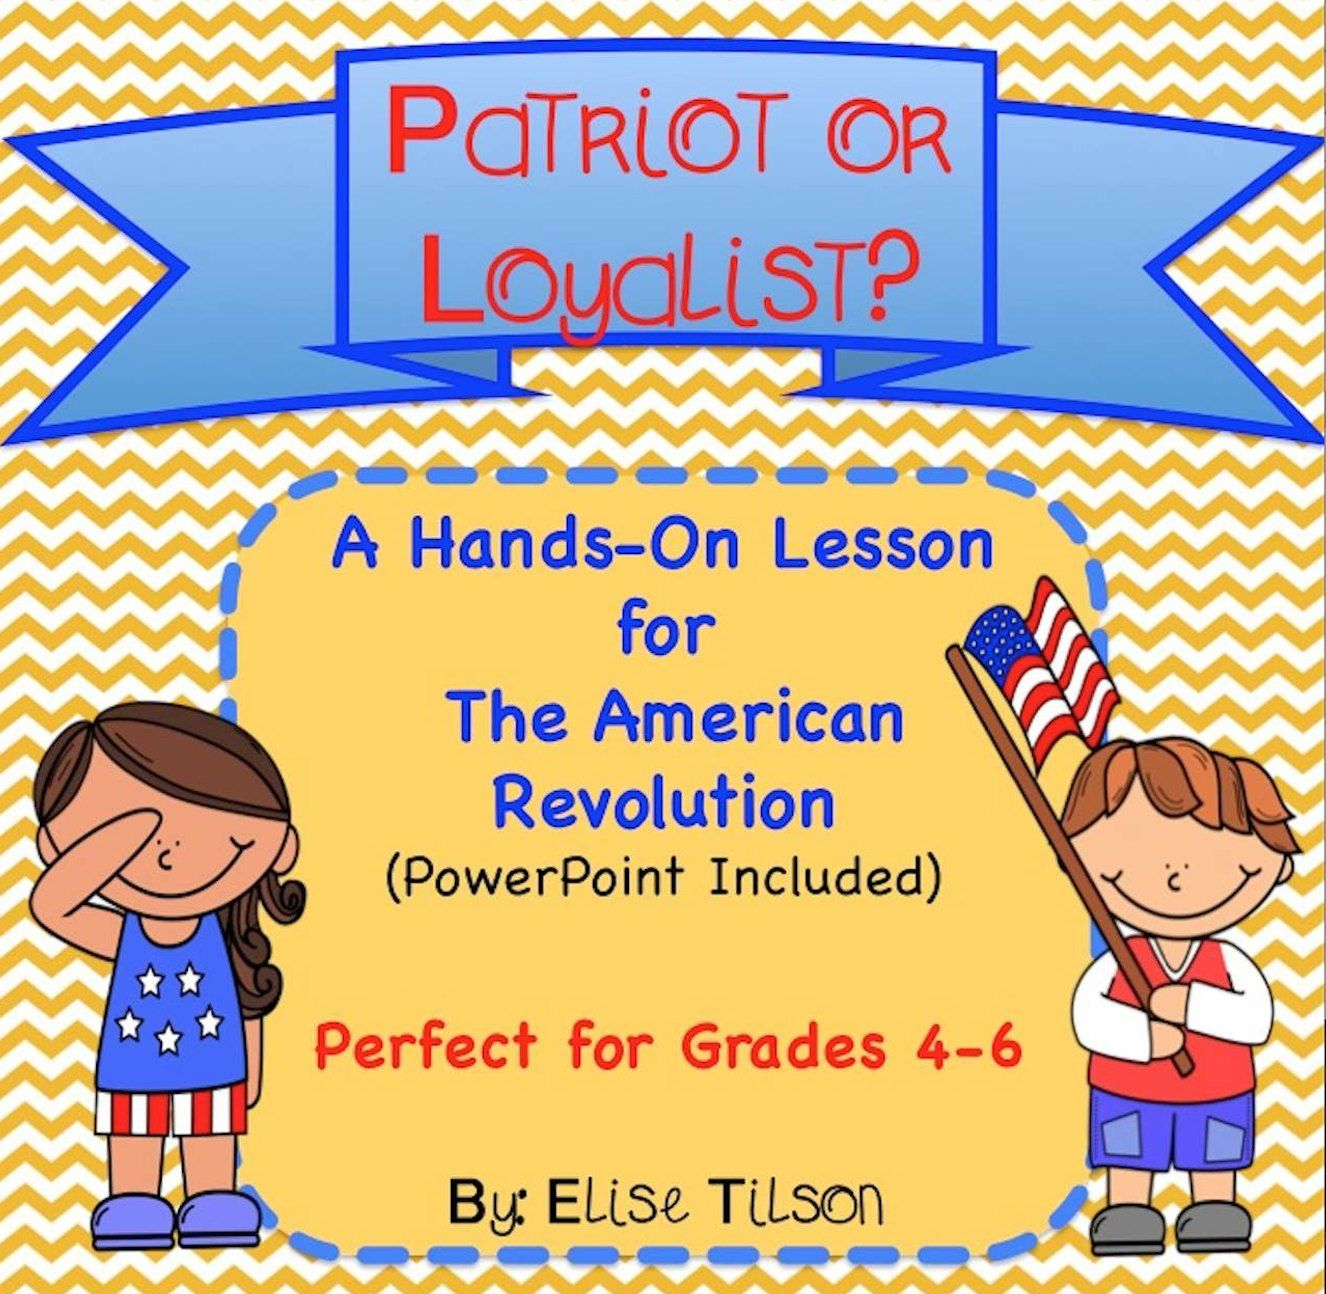 Patriots Vs Loyalists Common Core Lesson Plan For The